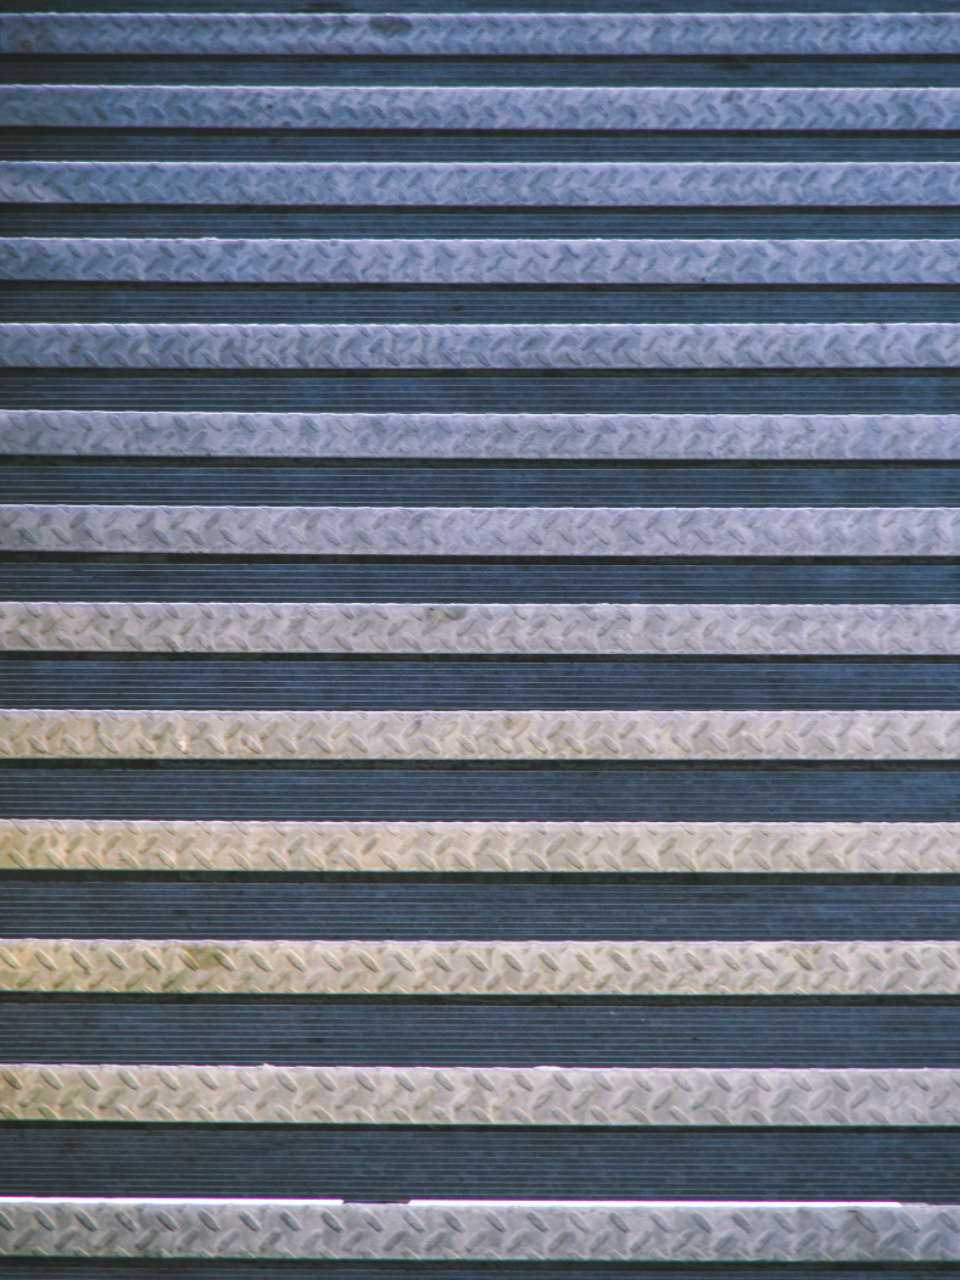 abstract metal exterior